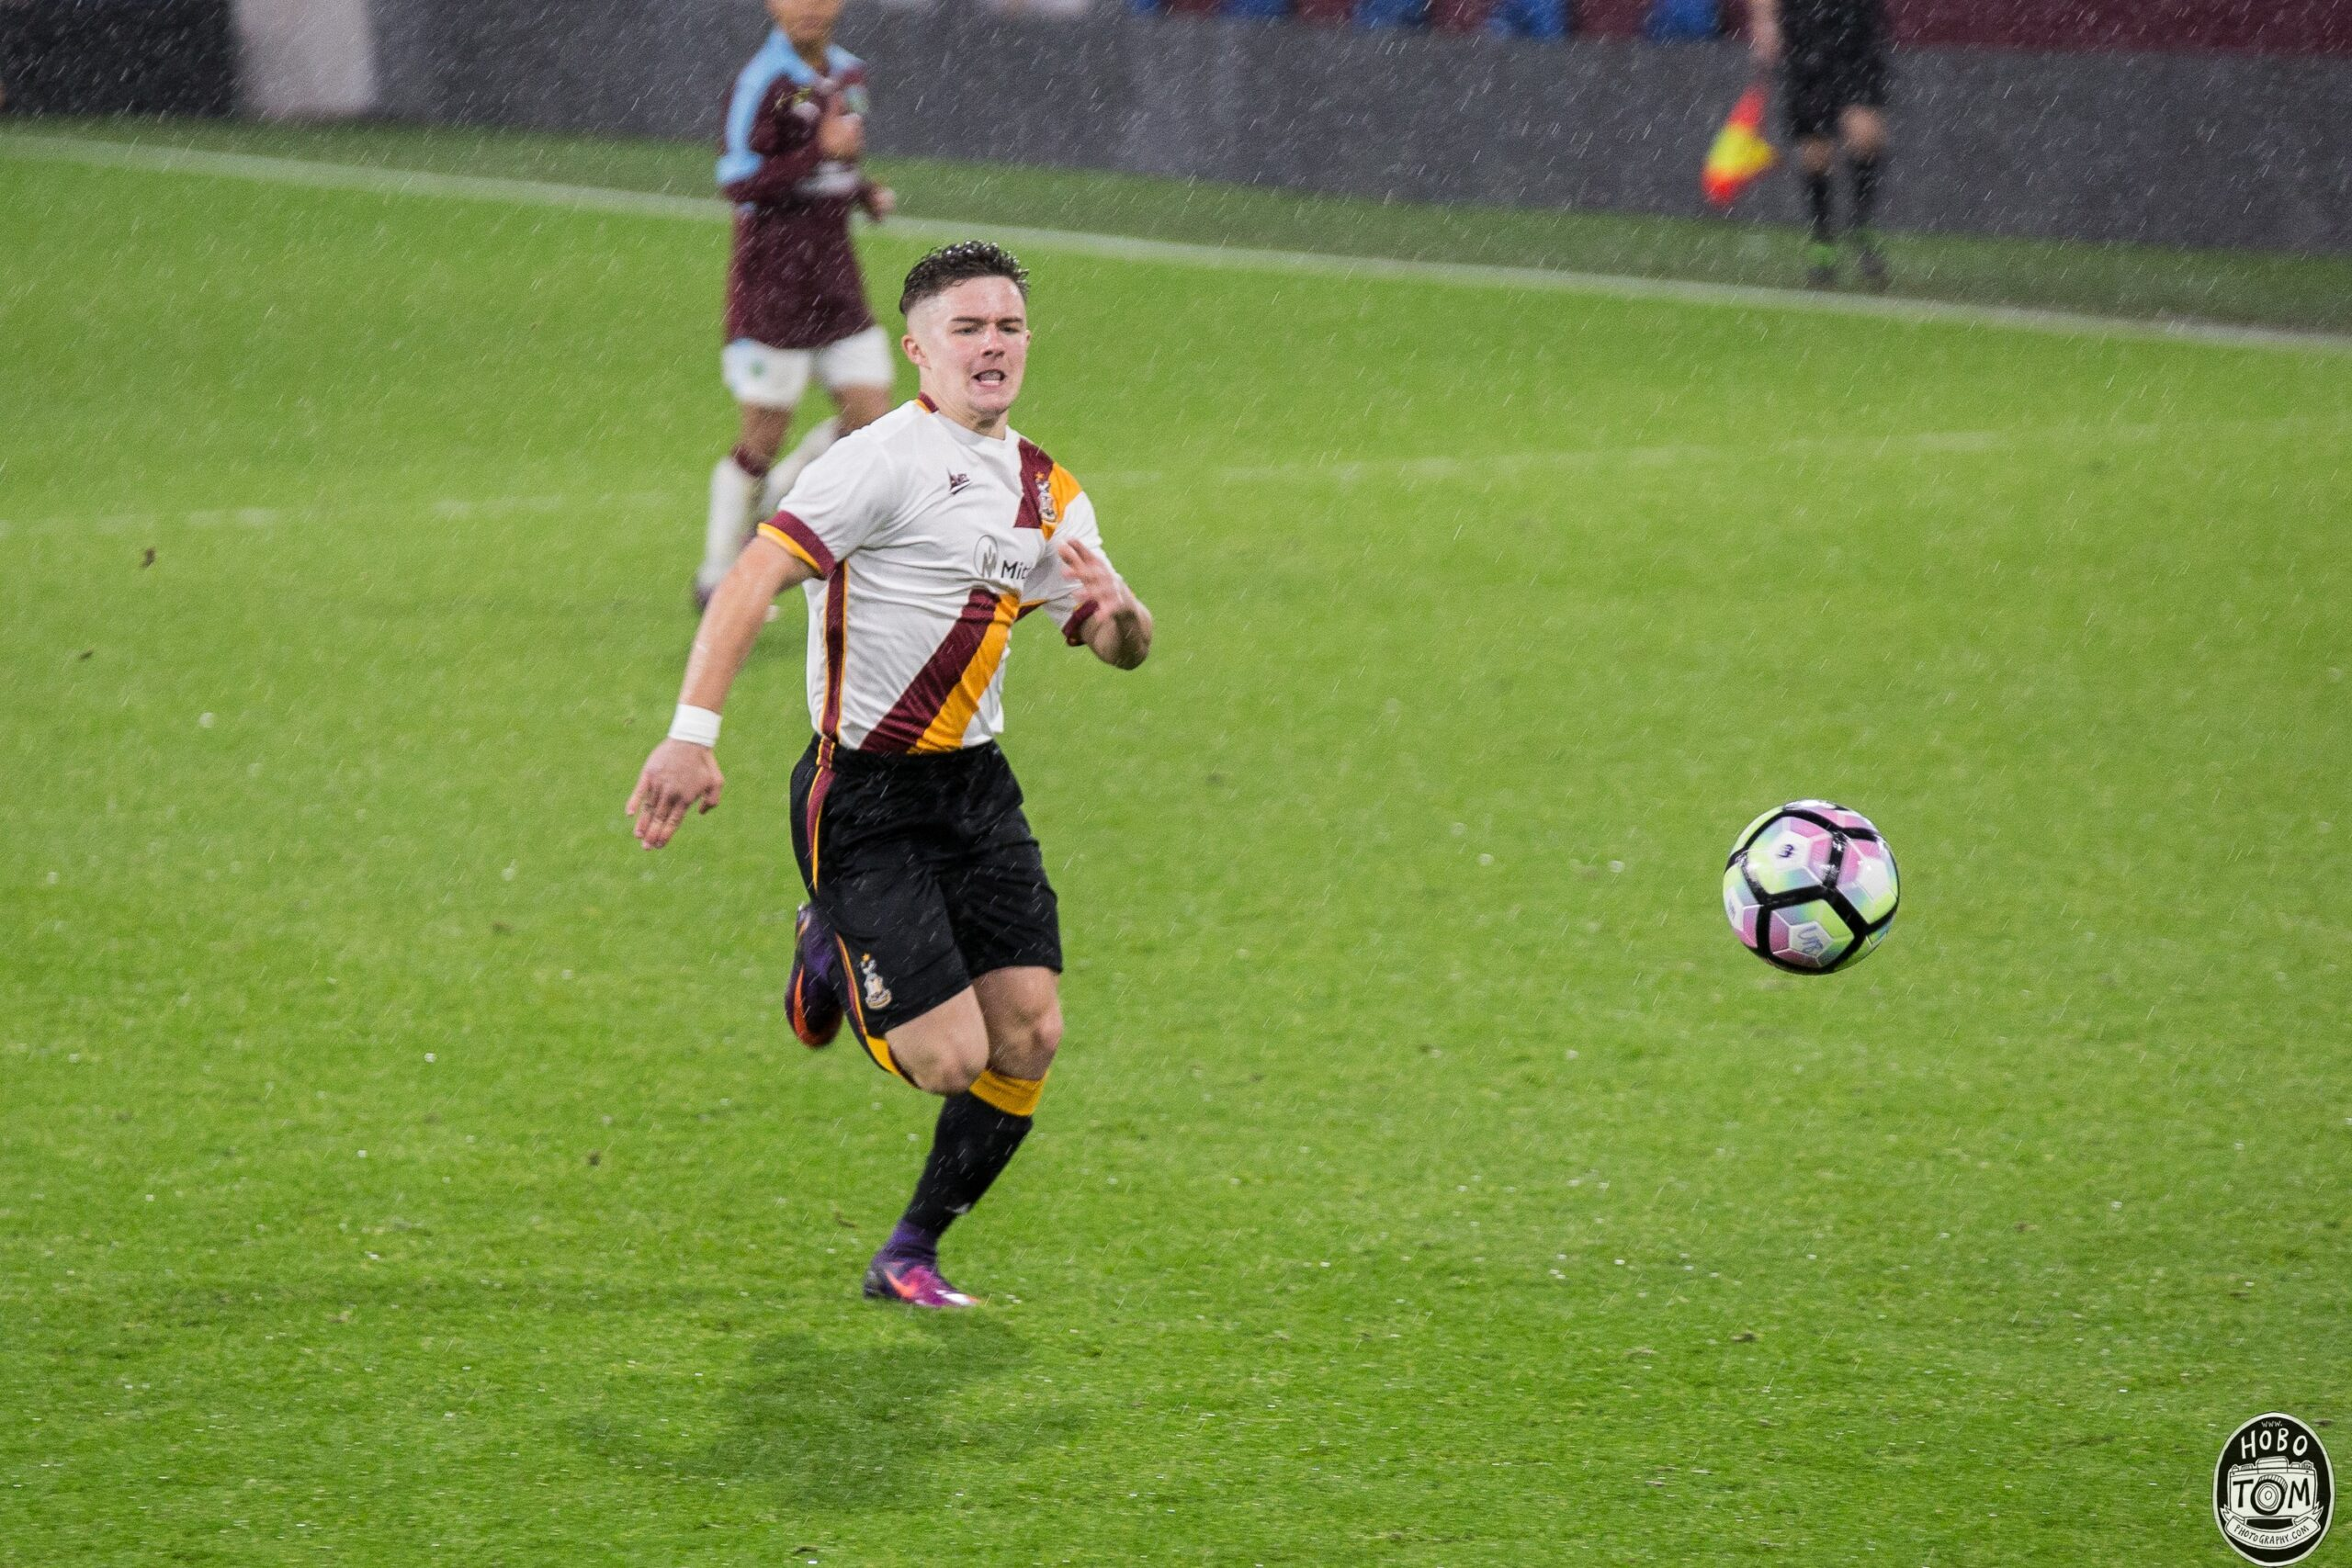 FA Youth Cup: Round 3